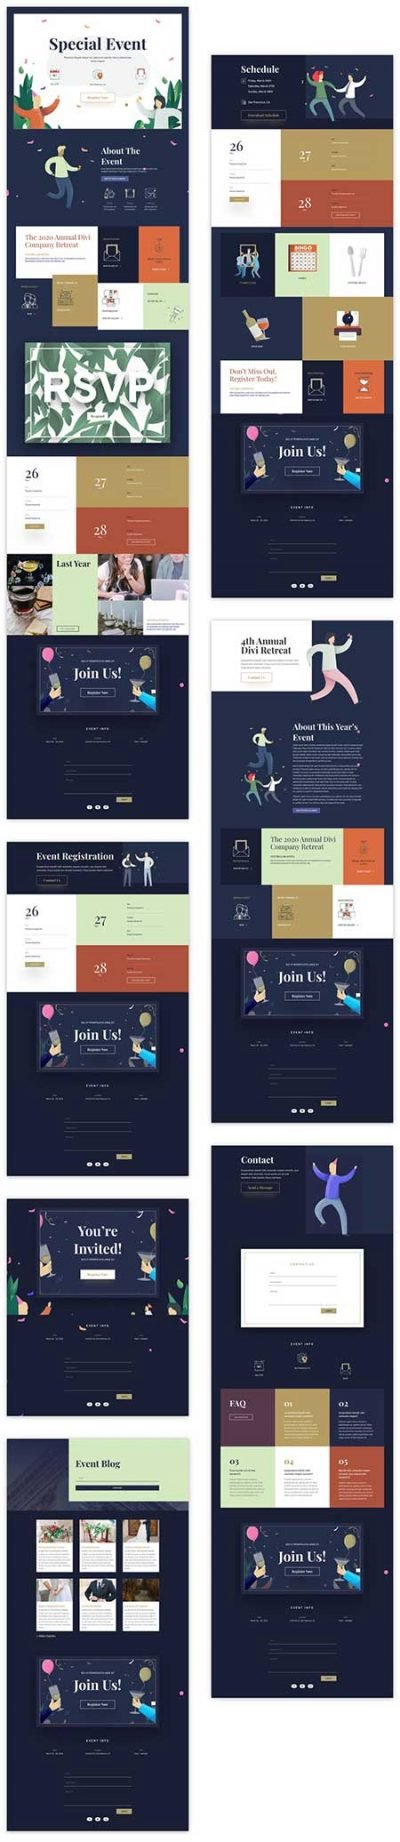 Divi events layout pack